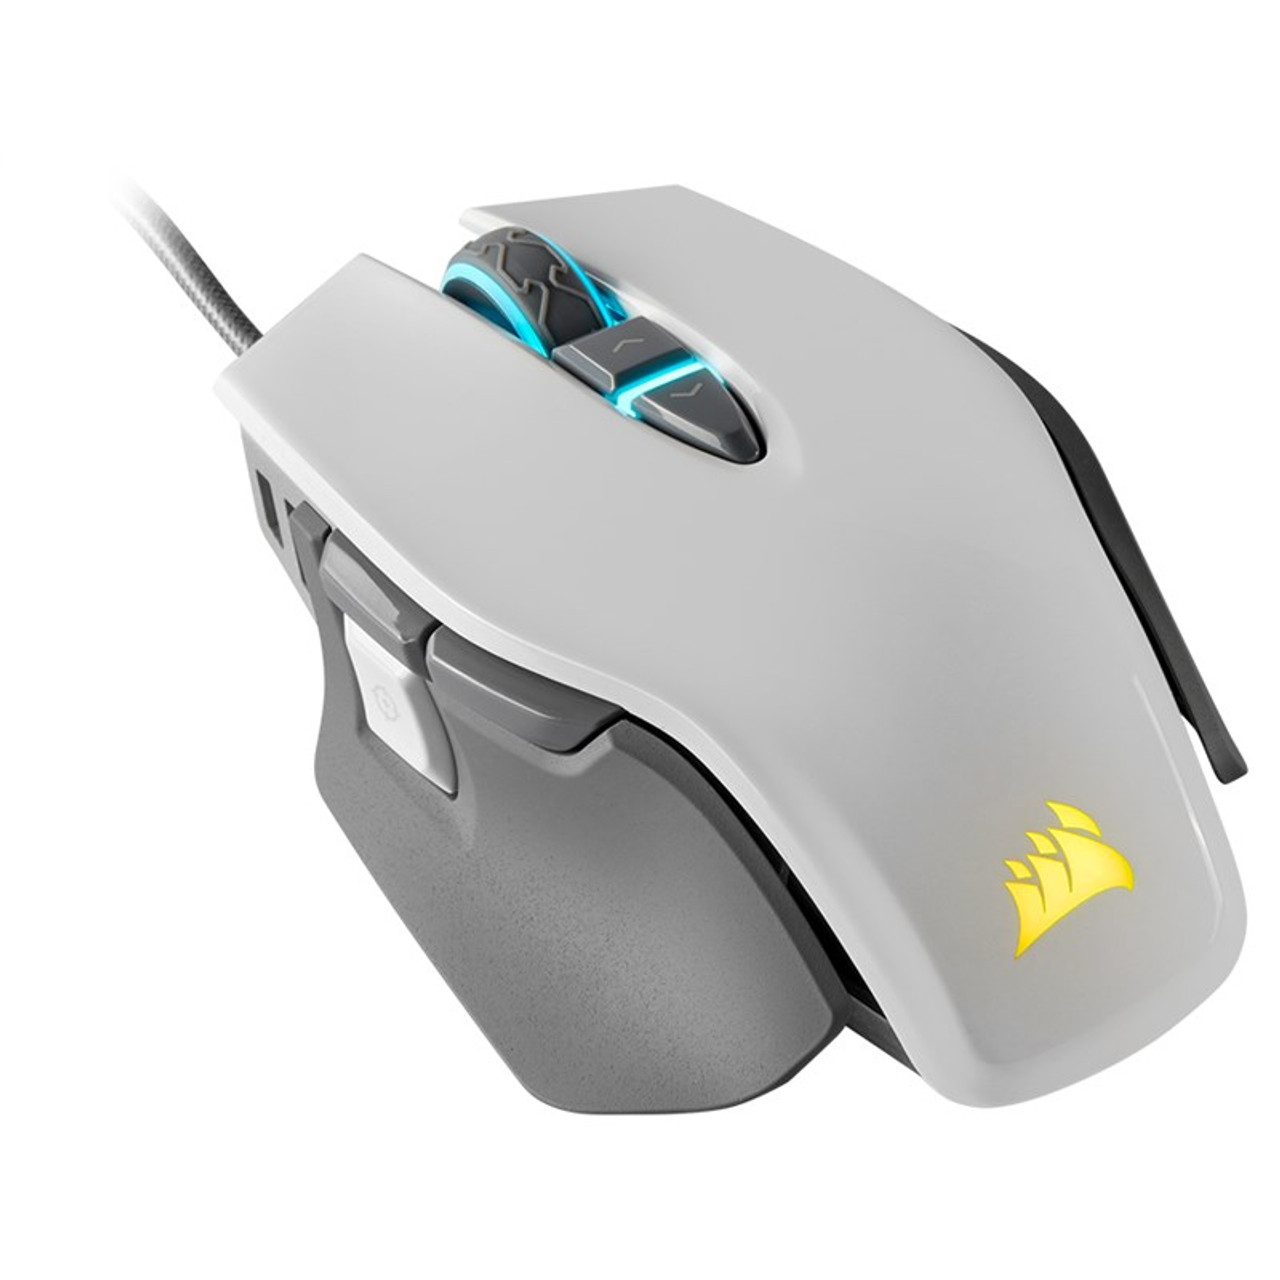 Product image for Corsair M65 Pro Elite Gaming Mouse White   CX Computer Superstore